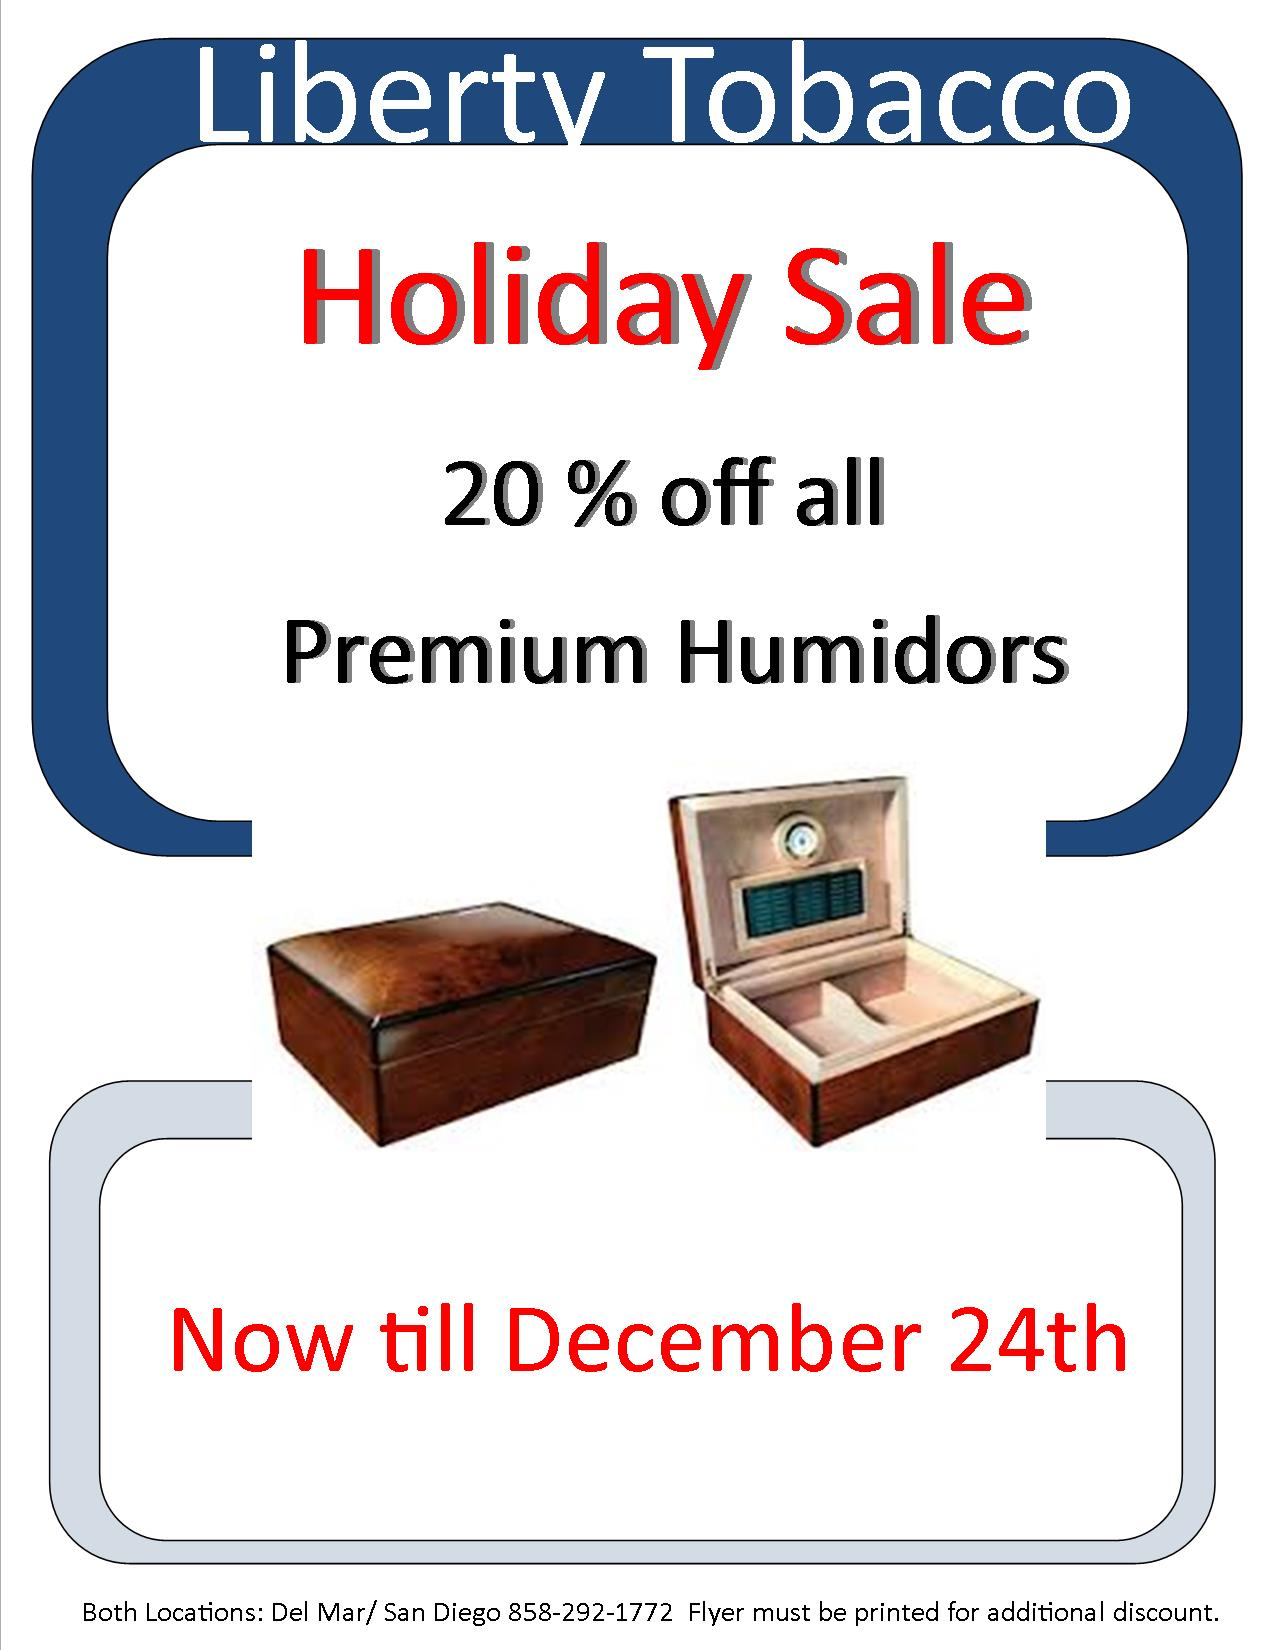 Humidor Sale at Liberty Tobacco